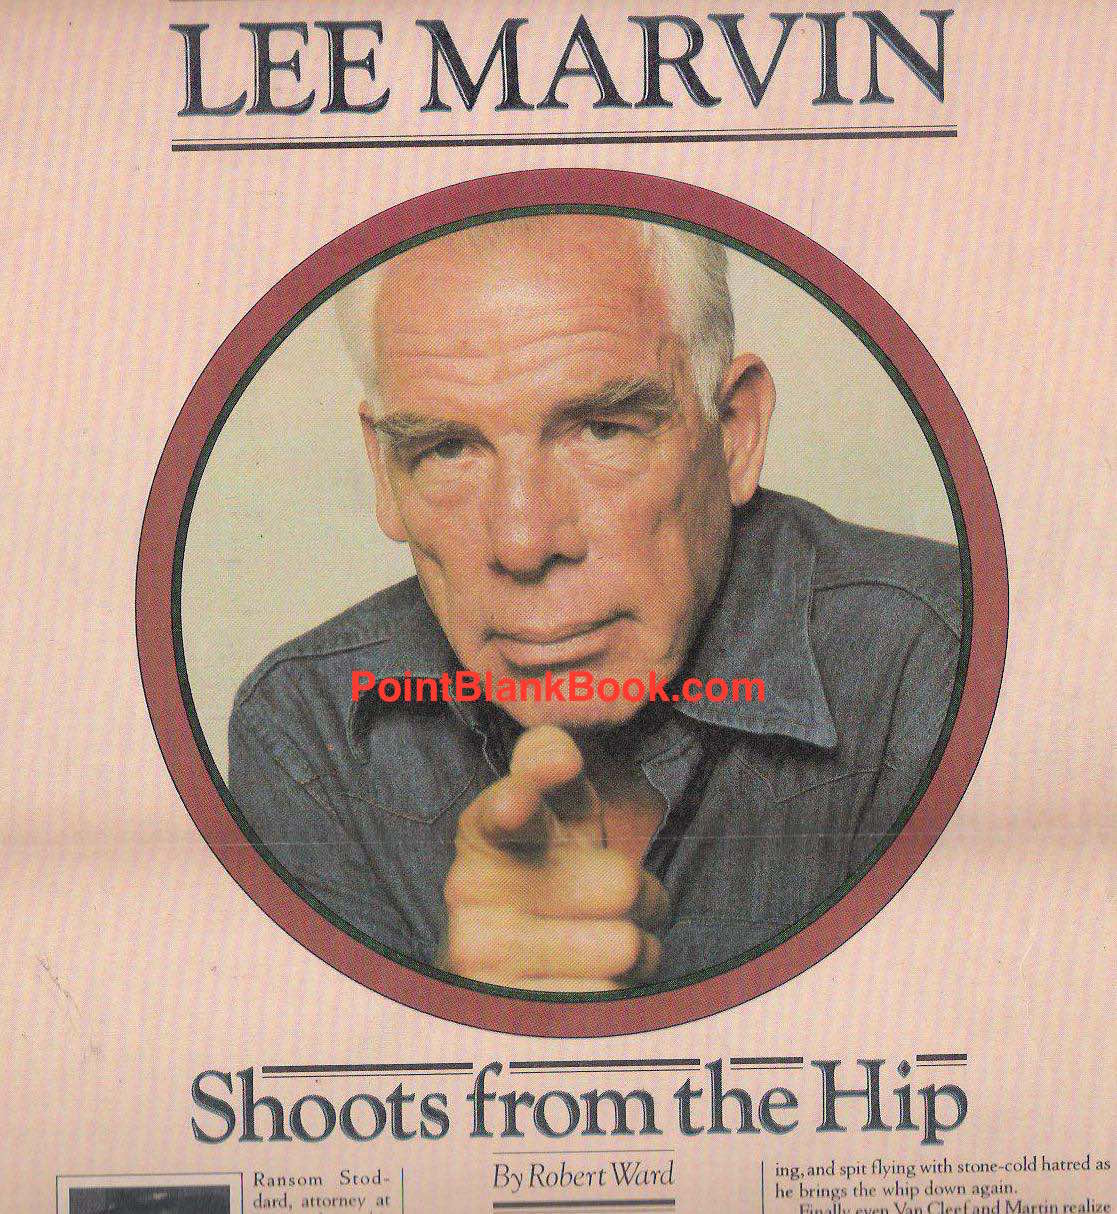 Author Robert Ward's opening to his Lee Marvin article.